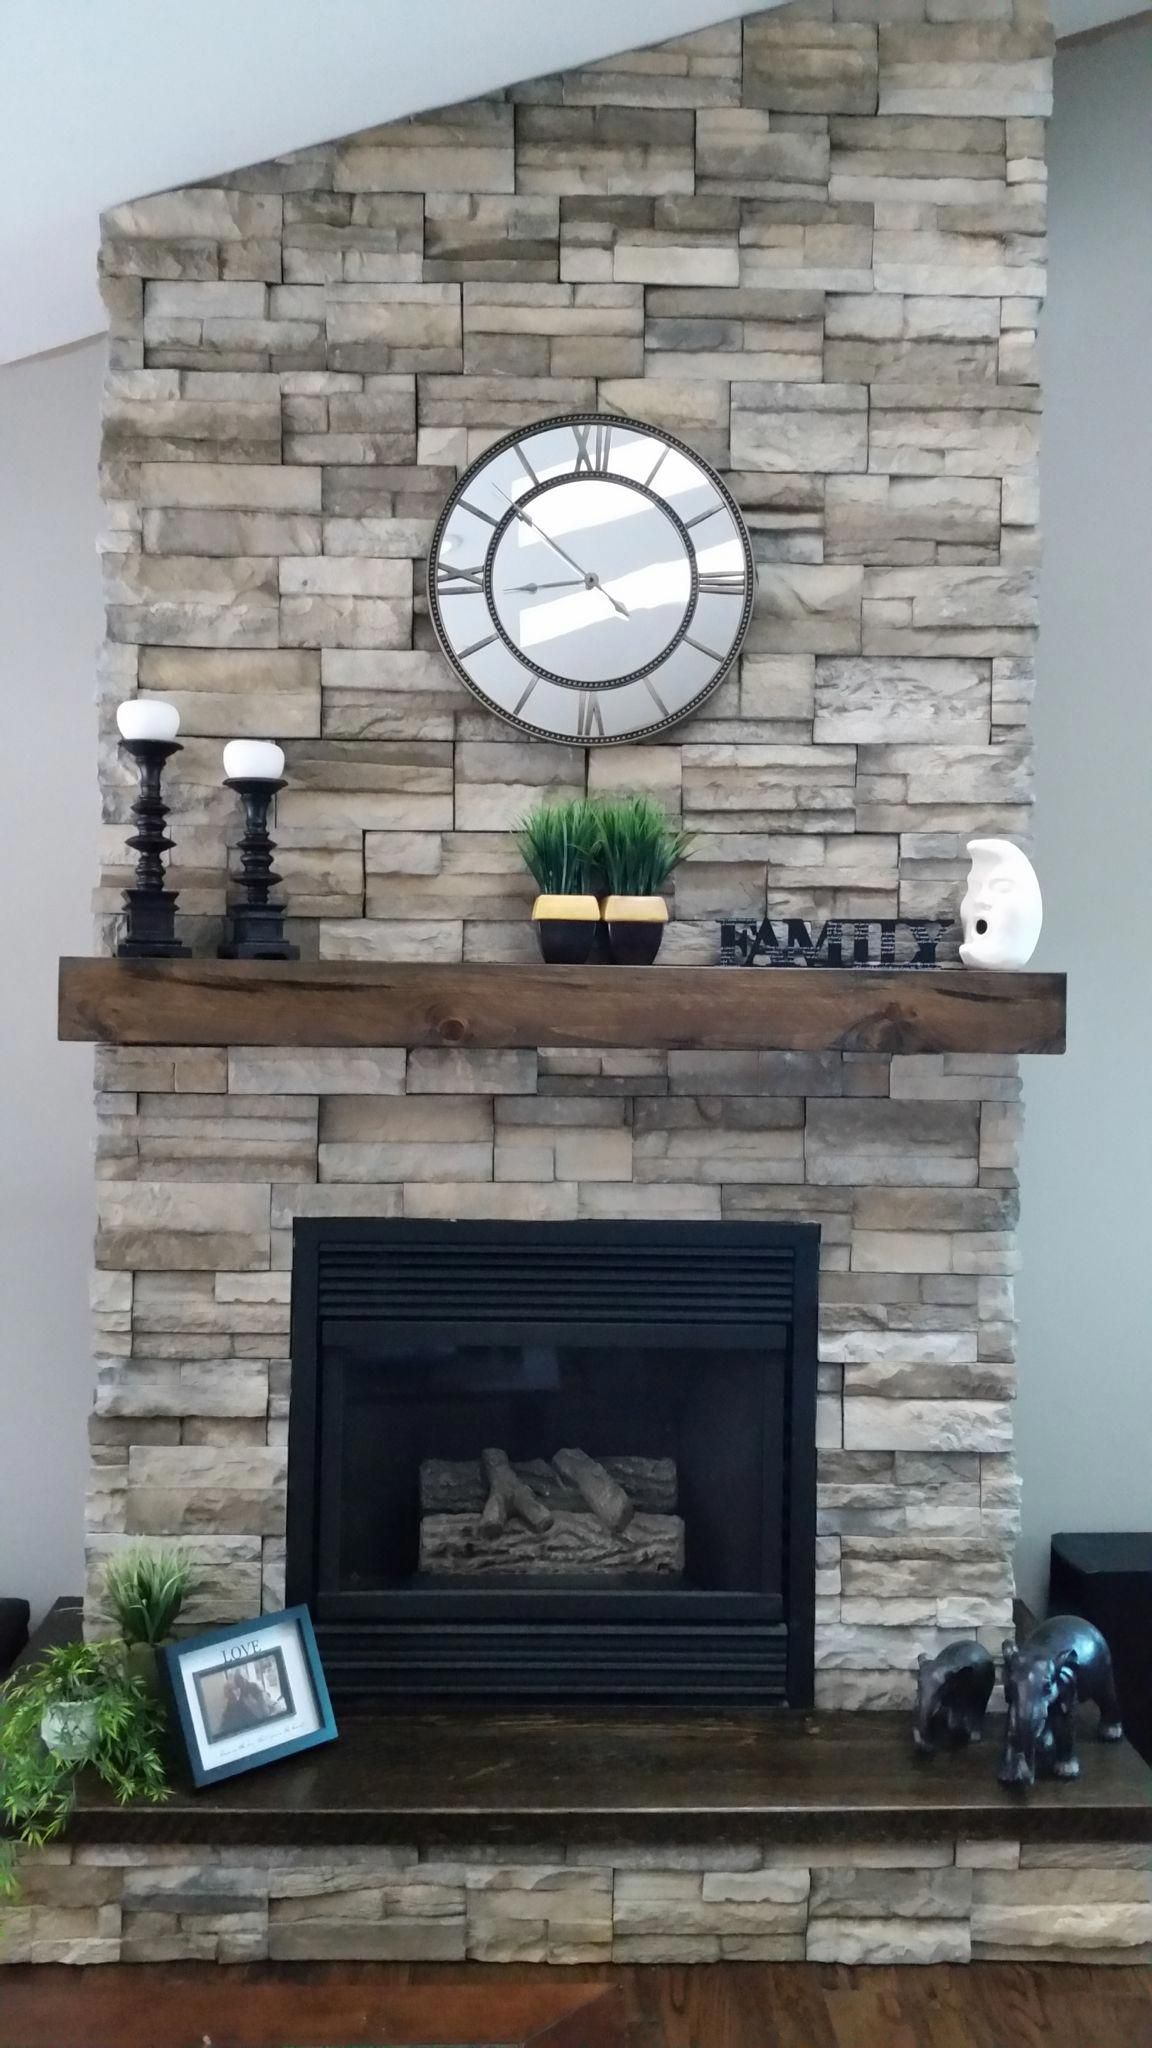 Does Your Fireplace Need A Remodel Check Out The Options We Have For You On Our Website Fireplacemakeover